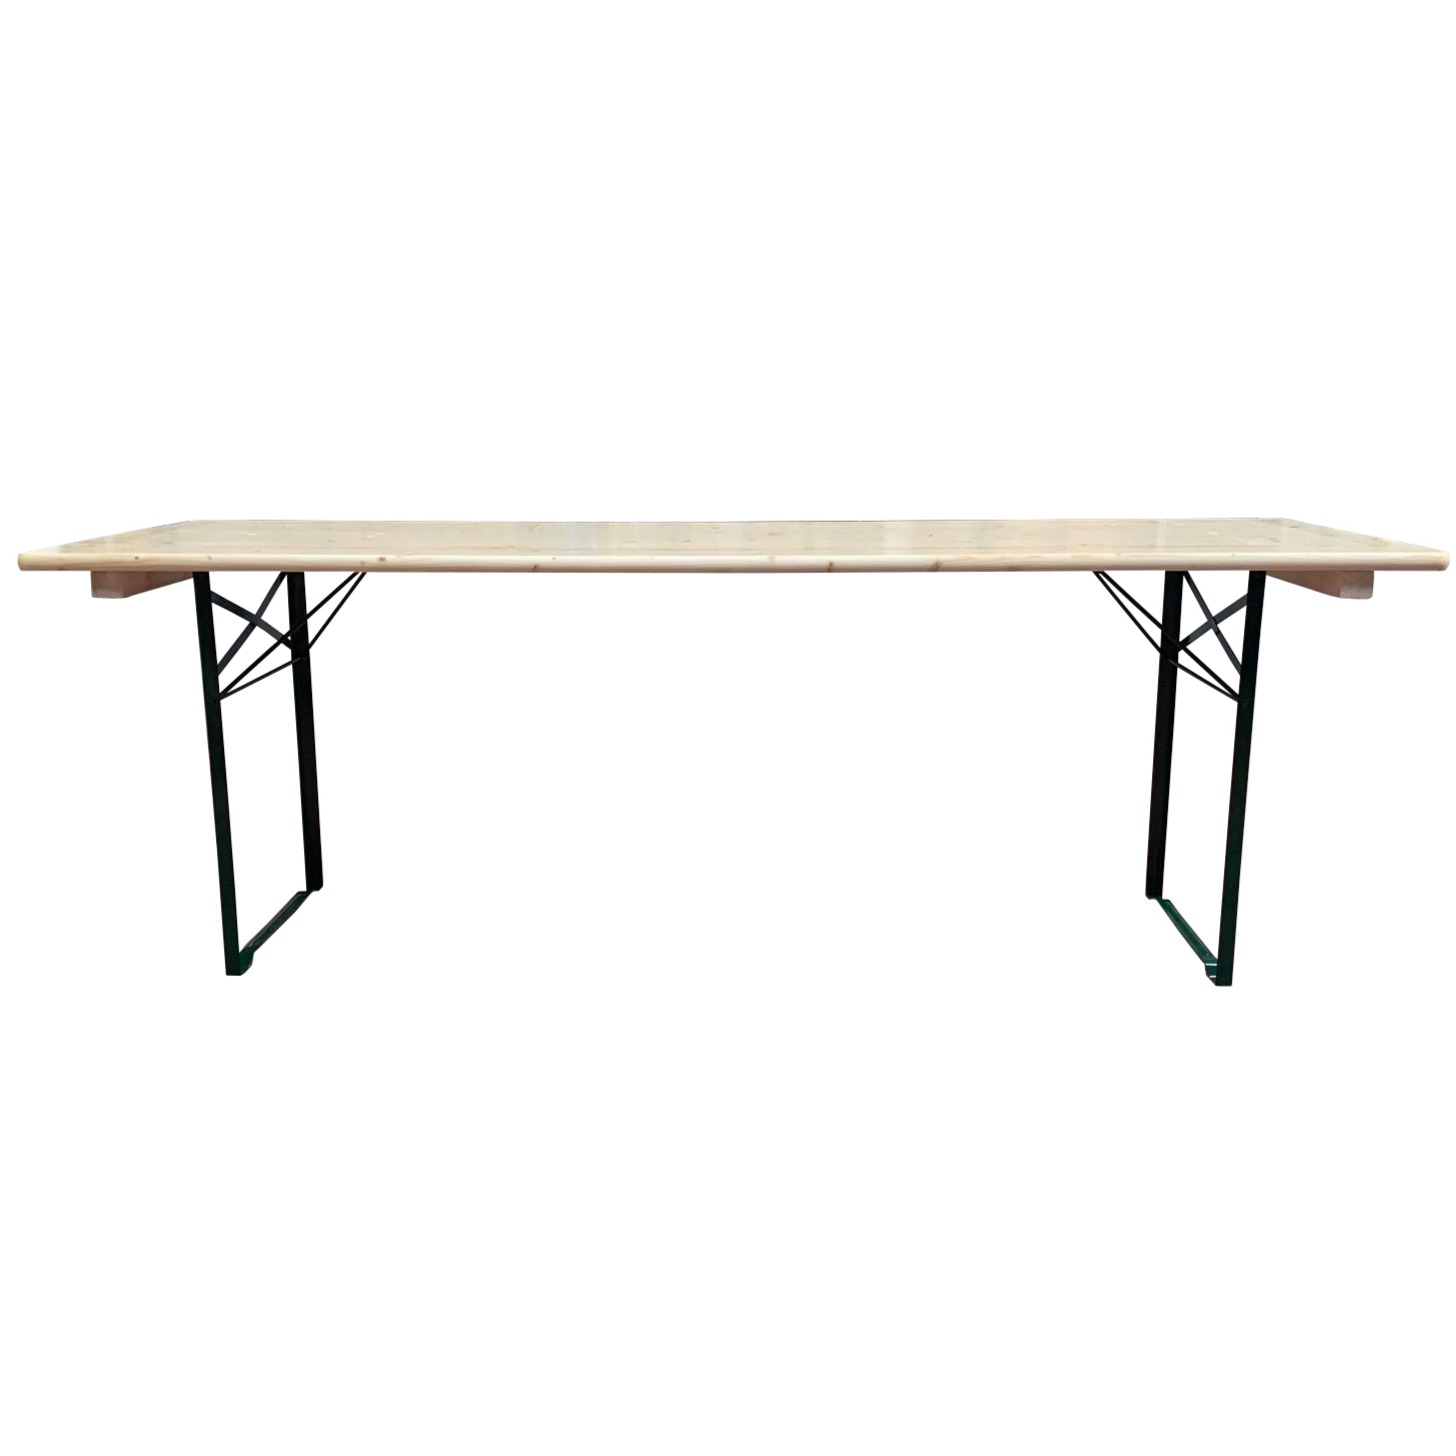 table brasserie 220x80cm bancs non compris pi tement corni re acier table pliante table. Black Bedroom Furniture Sets. Home Design Ideas